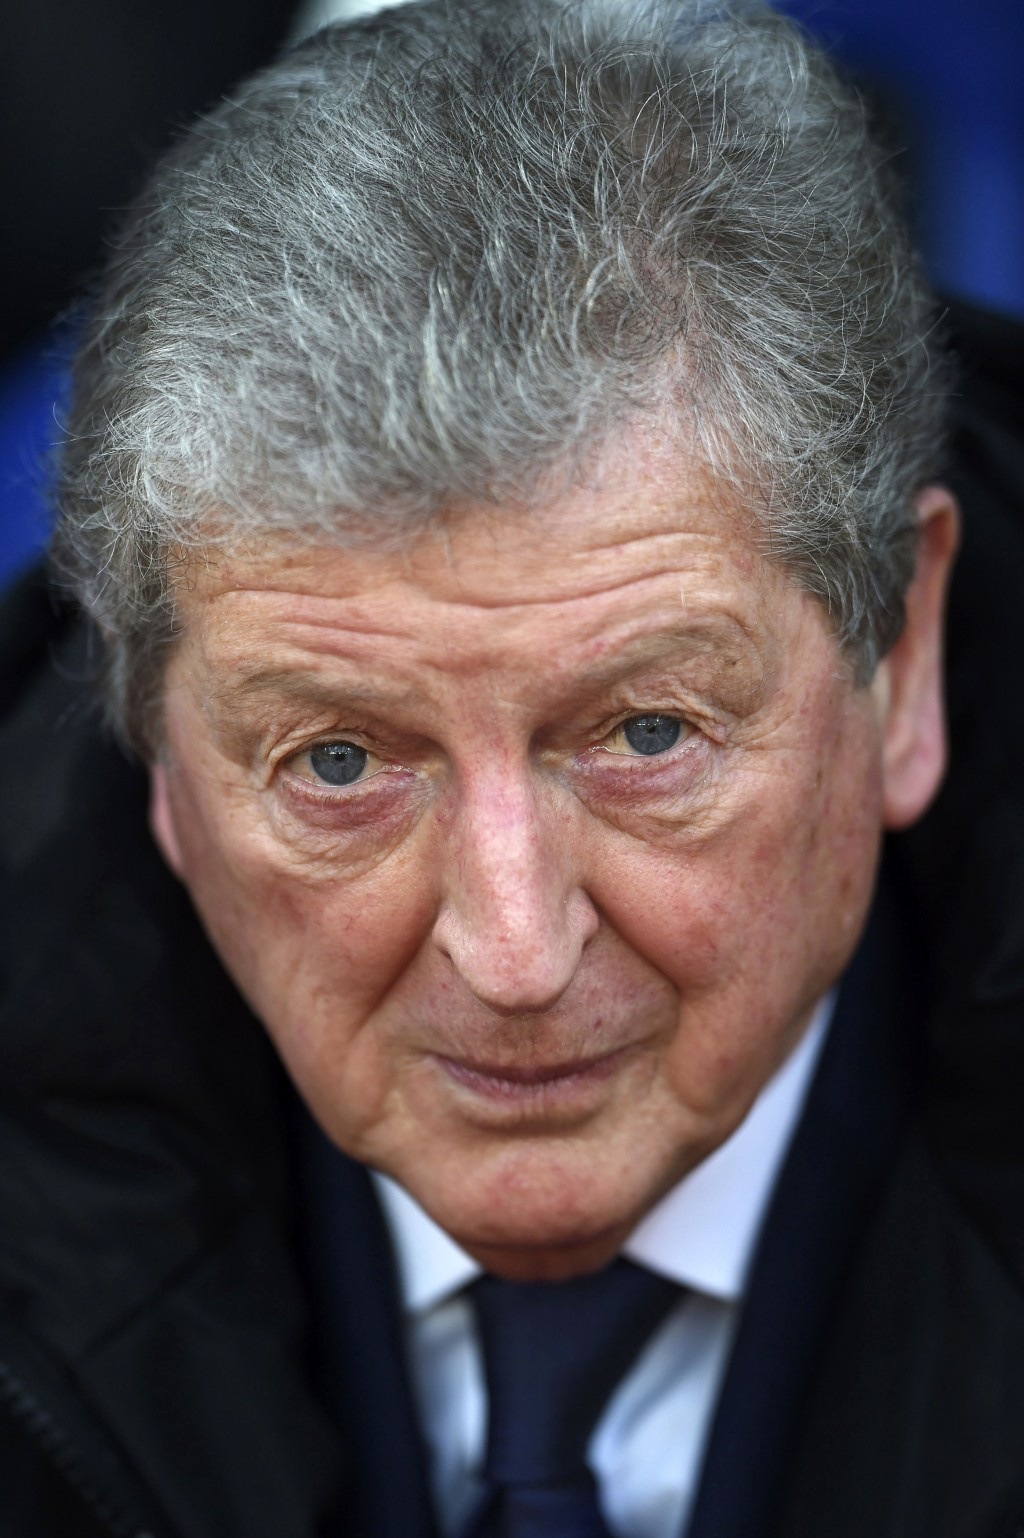 Crystal Palace manager Roy Hodgson before the English Premier League soccer match against Burnley at Selhurst Park, London, Saturday Jan. 13, 2018. (D